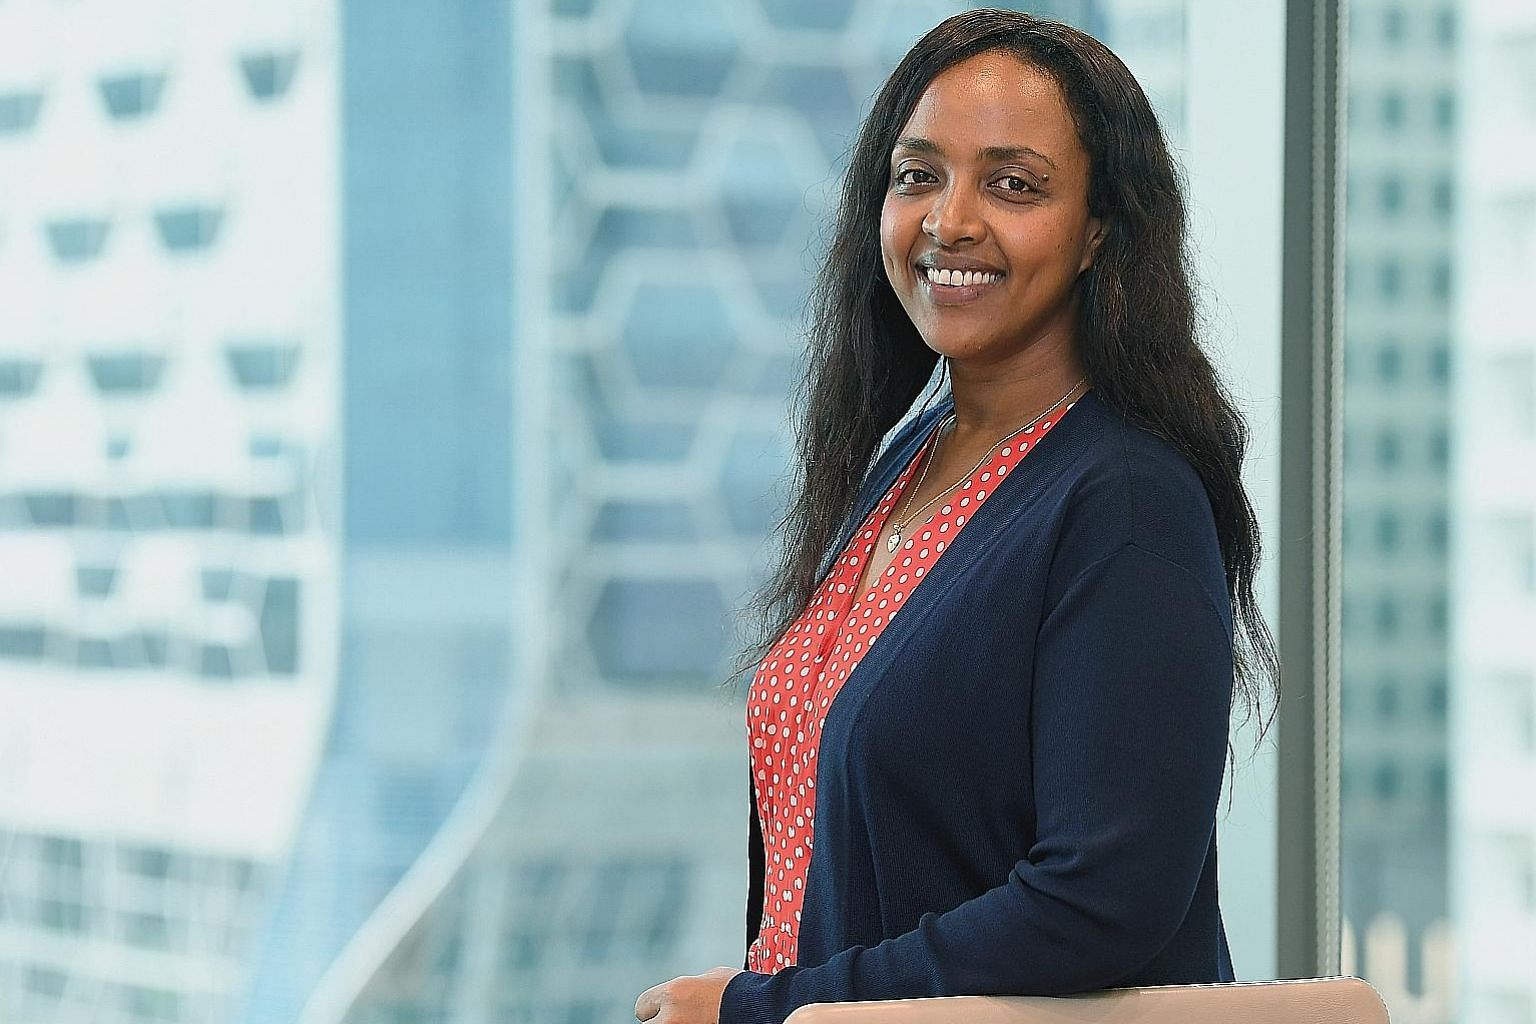 Ms Dessi Berhane-Silassie, a senior in-house counsel and the new president of the Singapore Corporate Counsel Association, says pro bono services will be a key focus for the body next year.